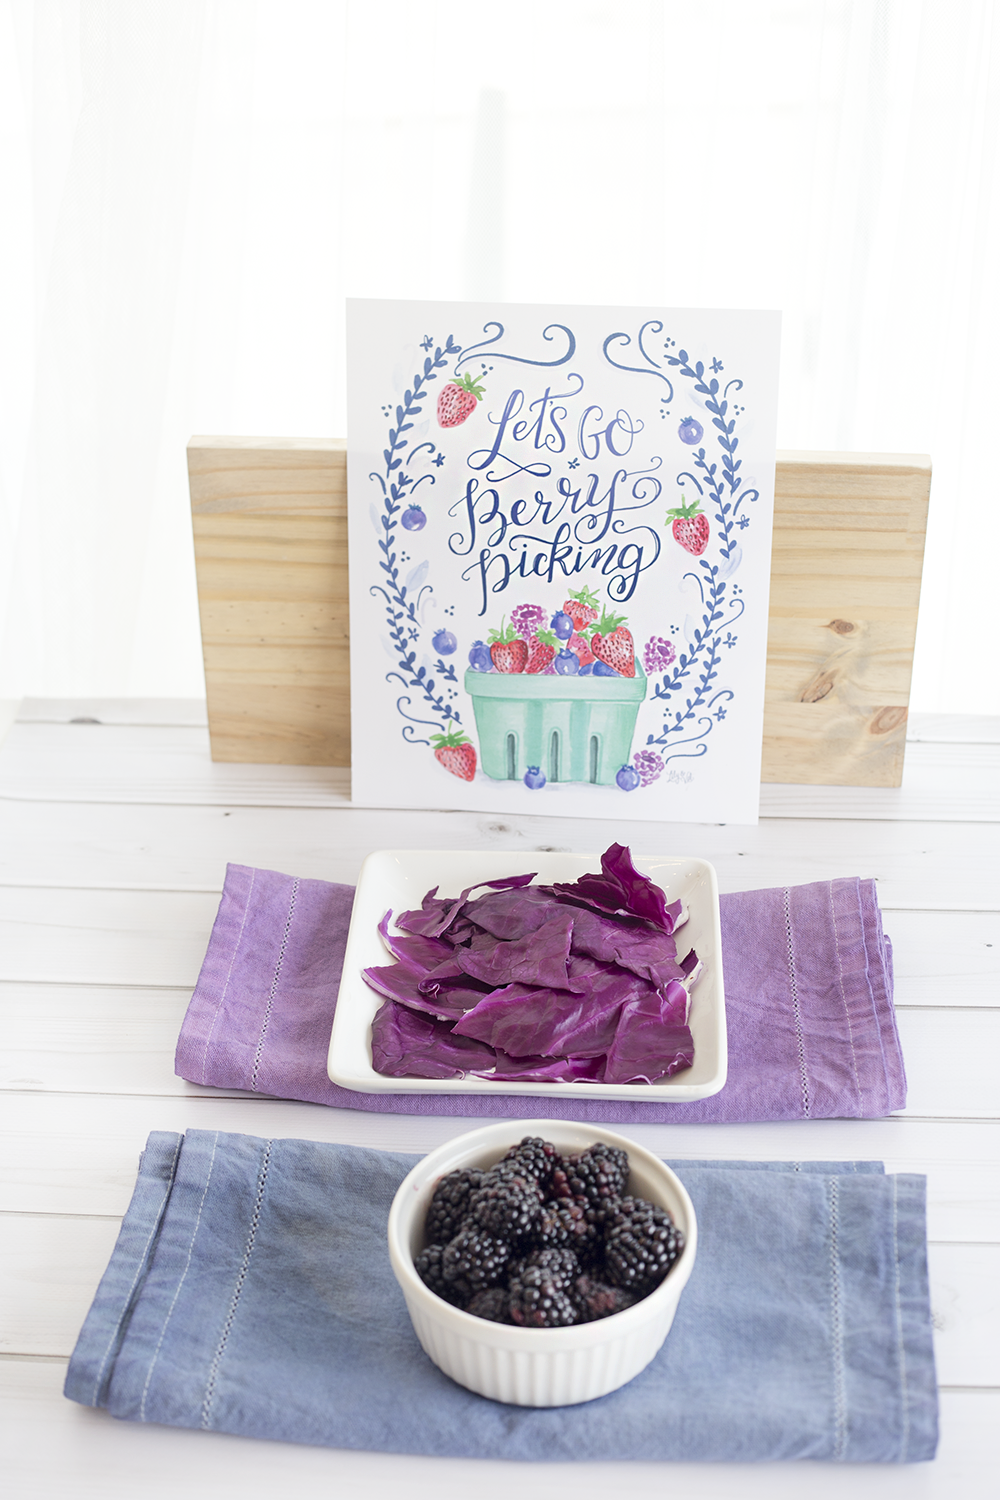 natural dyes DIY | table runner DIY | using natural dyes